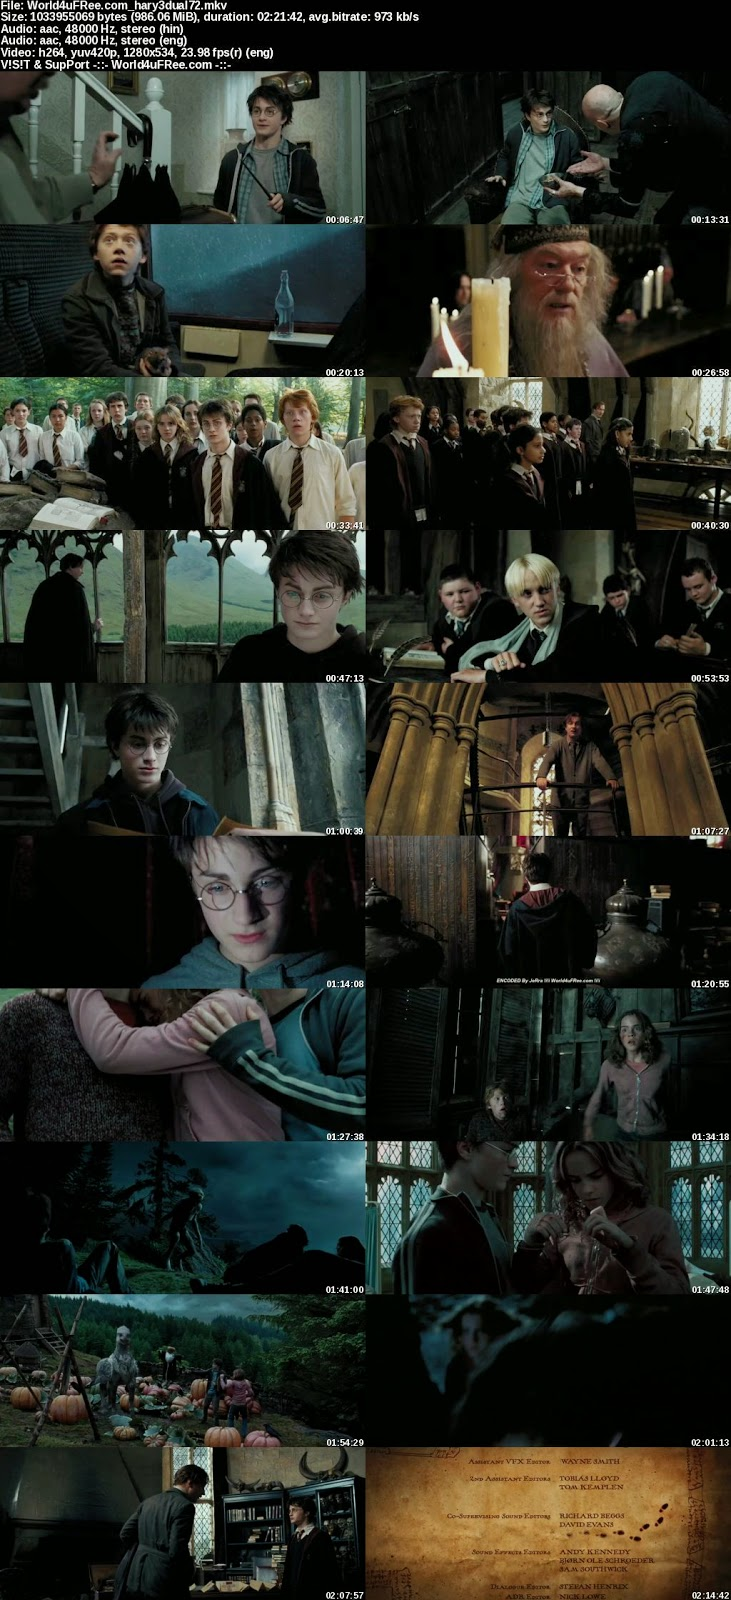 Harry Potter and the Prisoner of Azkaban 2004 Hindi Dubbed Dual BRRip 720p world4ufree.ws, hollywood movie Harry Potter and the Prisoner of Azkaban 2004 hindi dubbed dual audio hindi english languages original audio 720p BRRip hdrip free download 700mb or watch online at world4ufree.ws